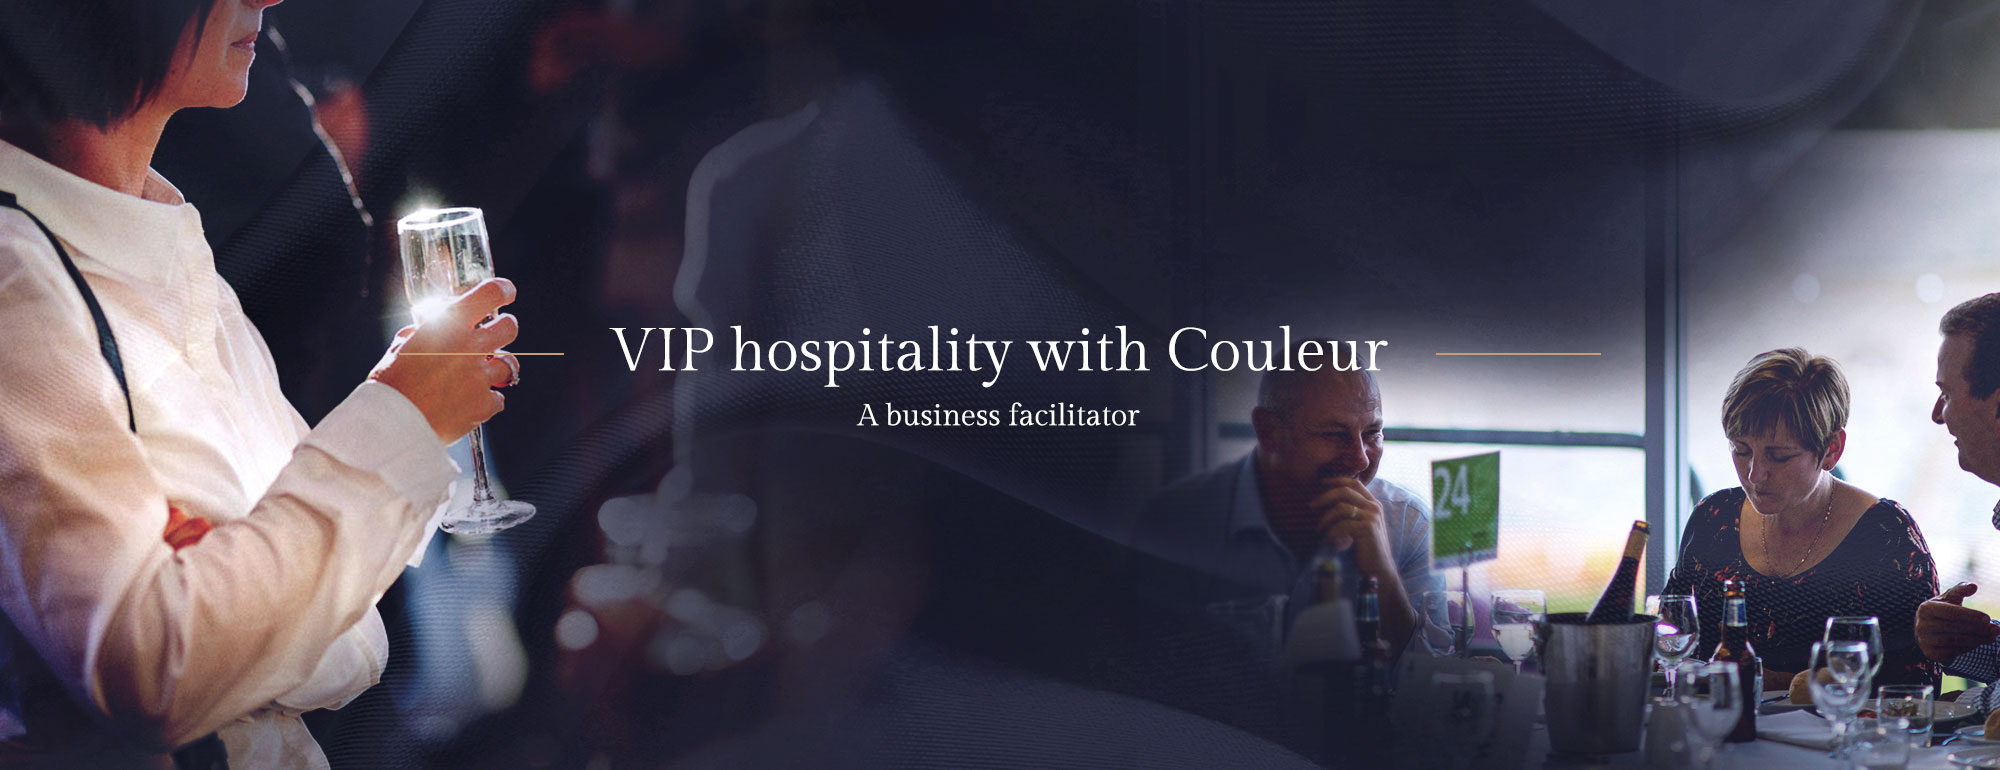 VIP HOSPITALITY AND TRAVEL Couleur voyage